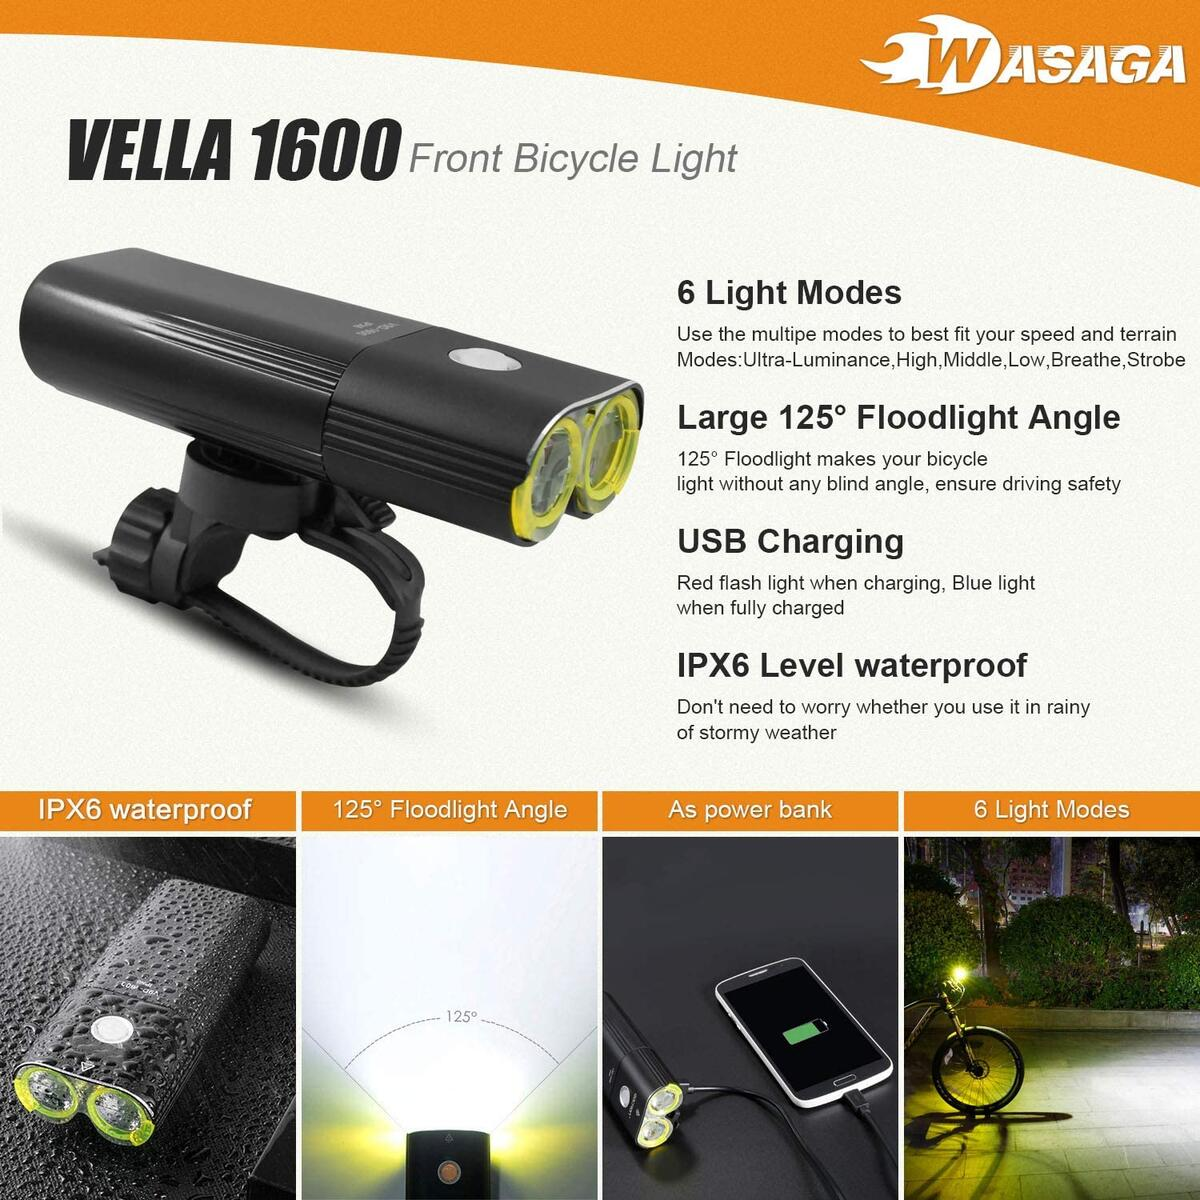 WASAGA Vella 1600 Bike Light Front and Back Bicycle Lights USB Headlight & Tail Lights for Commuters, Road Cyclists & Mountain Bikers